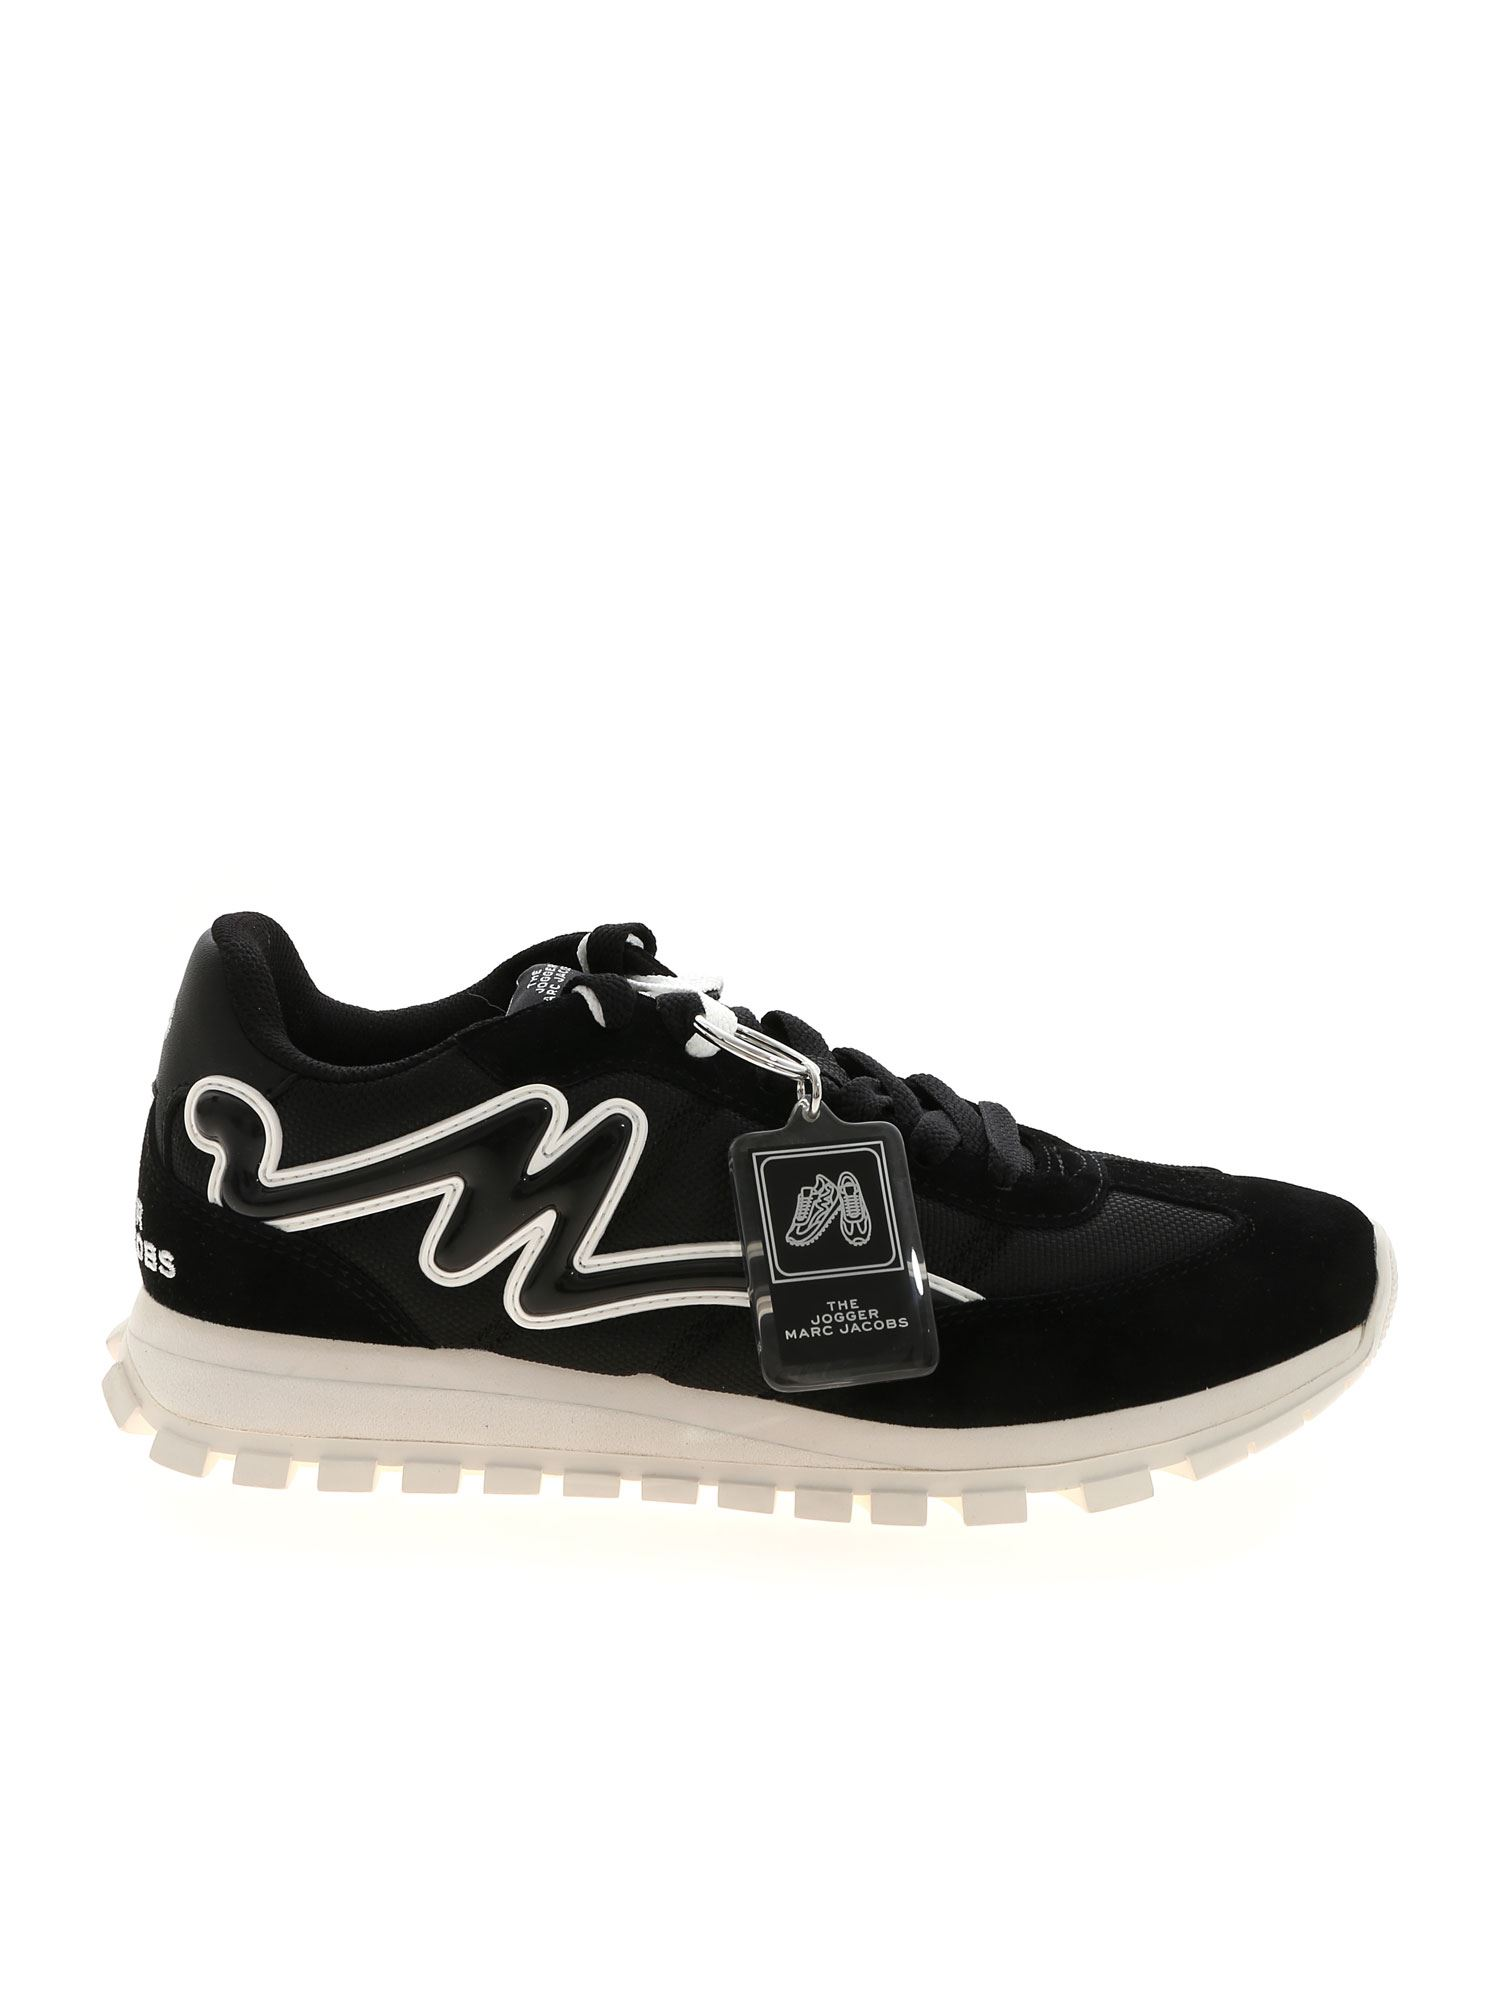 Marc Jacobs THE JOGGER SNEAKERS IN BLACK